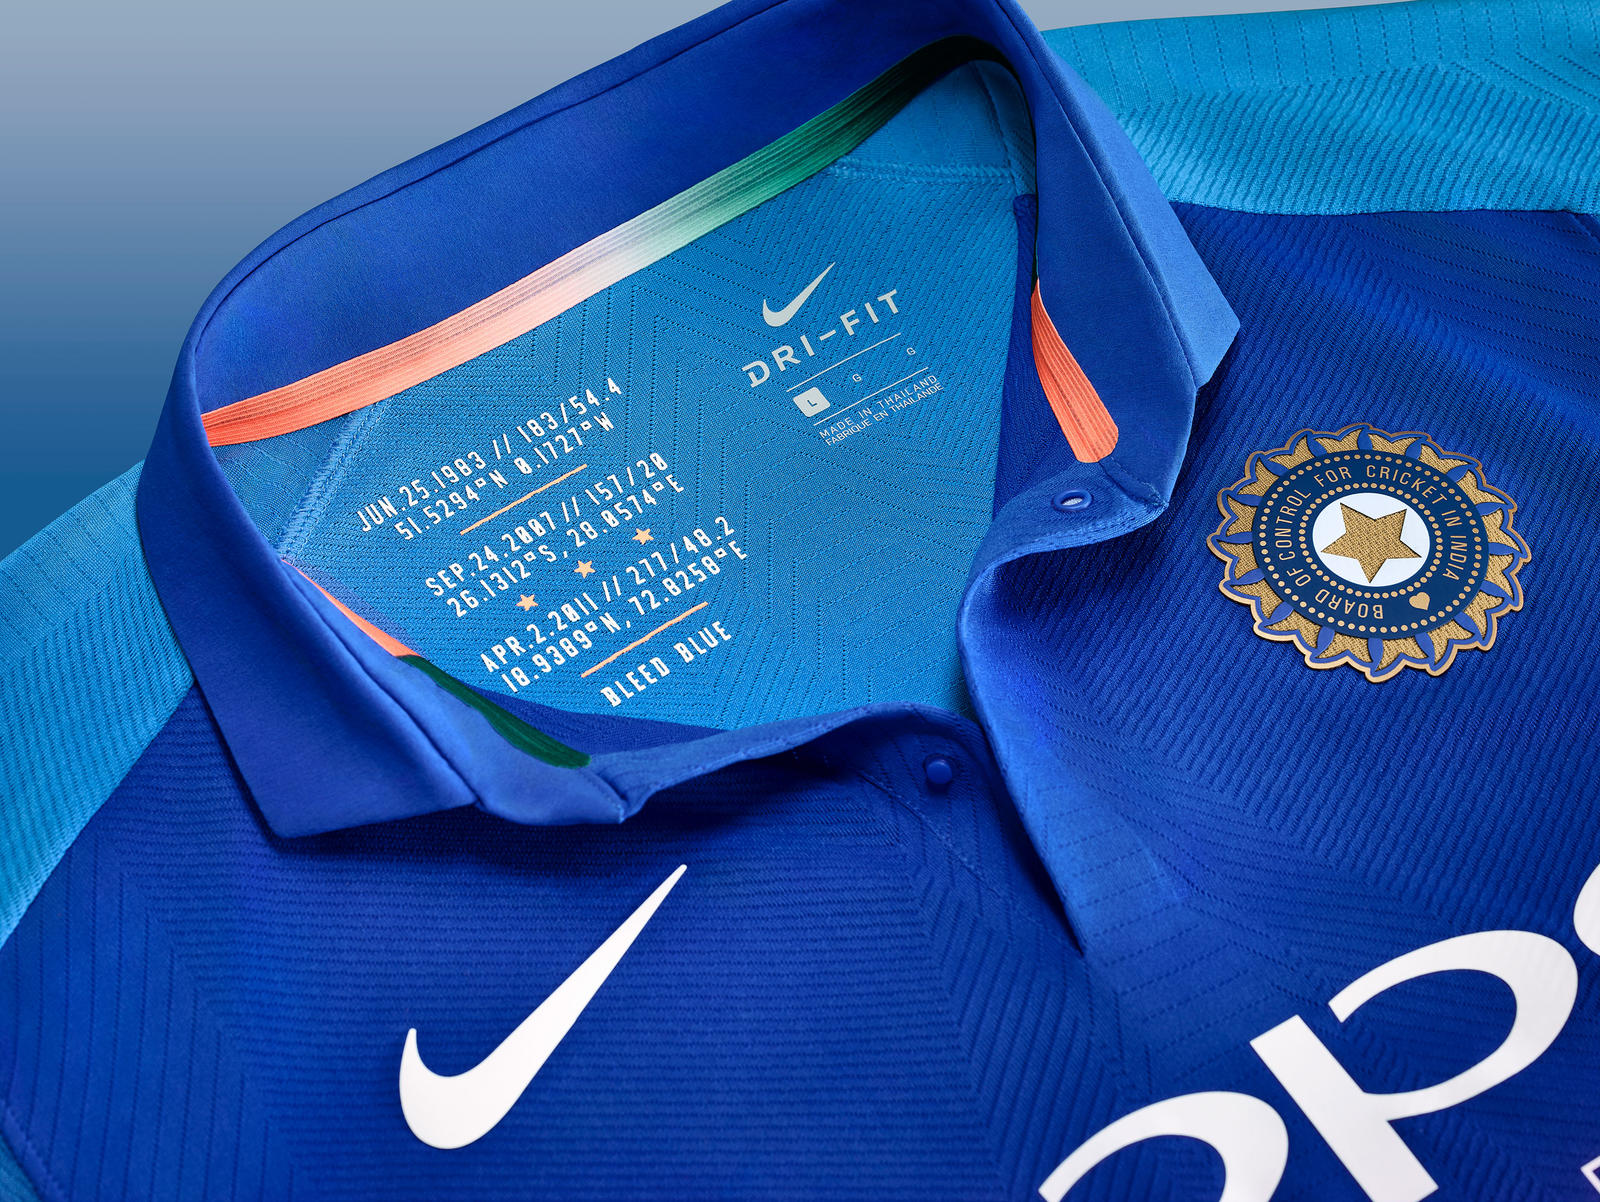 Nike Cricket India National Team Kits 2019 56751 386872 R04 56751 379132 Nike Apla Sp19 Cricket Mens Gameday Odi Match Top Inner Pride Neck Tape Detail 1116 Hr